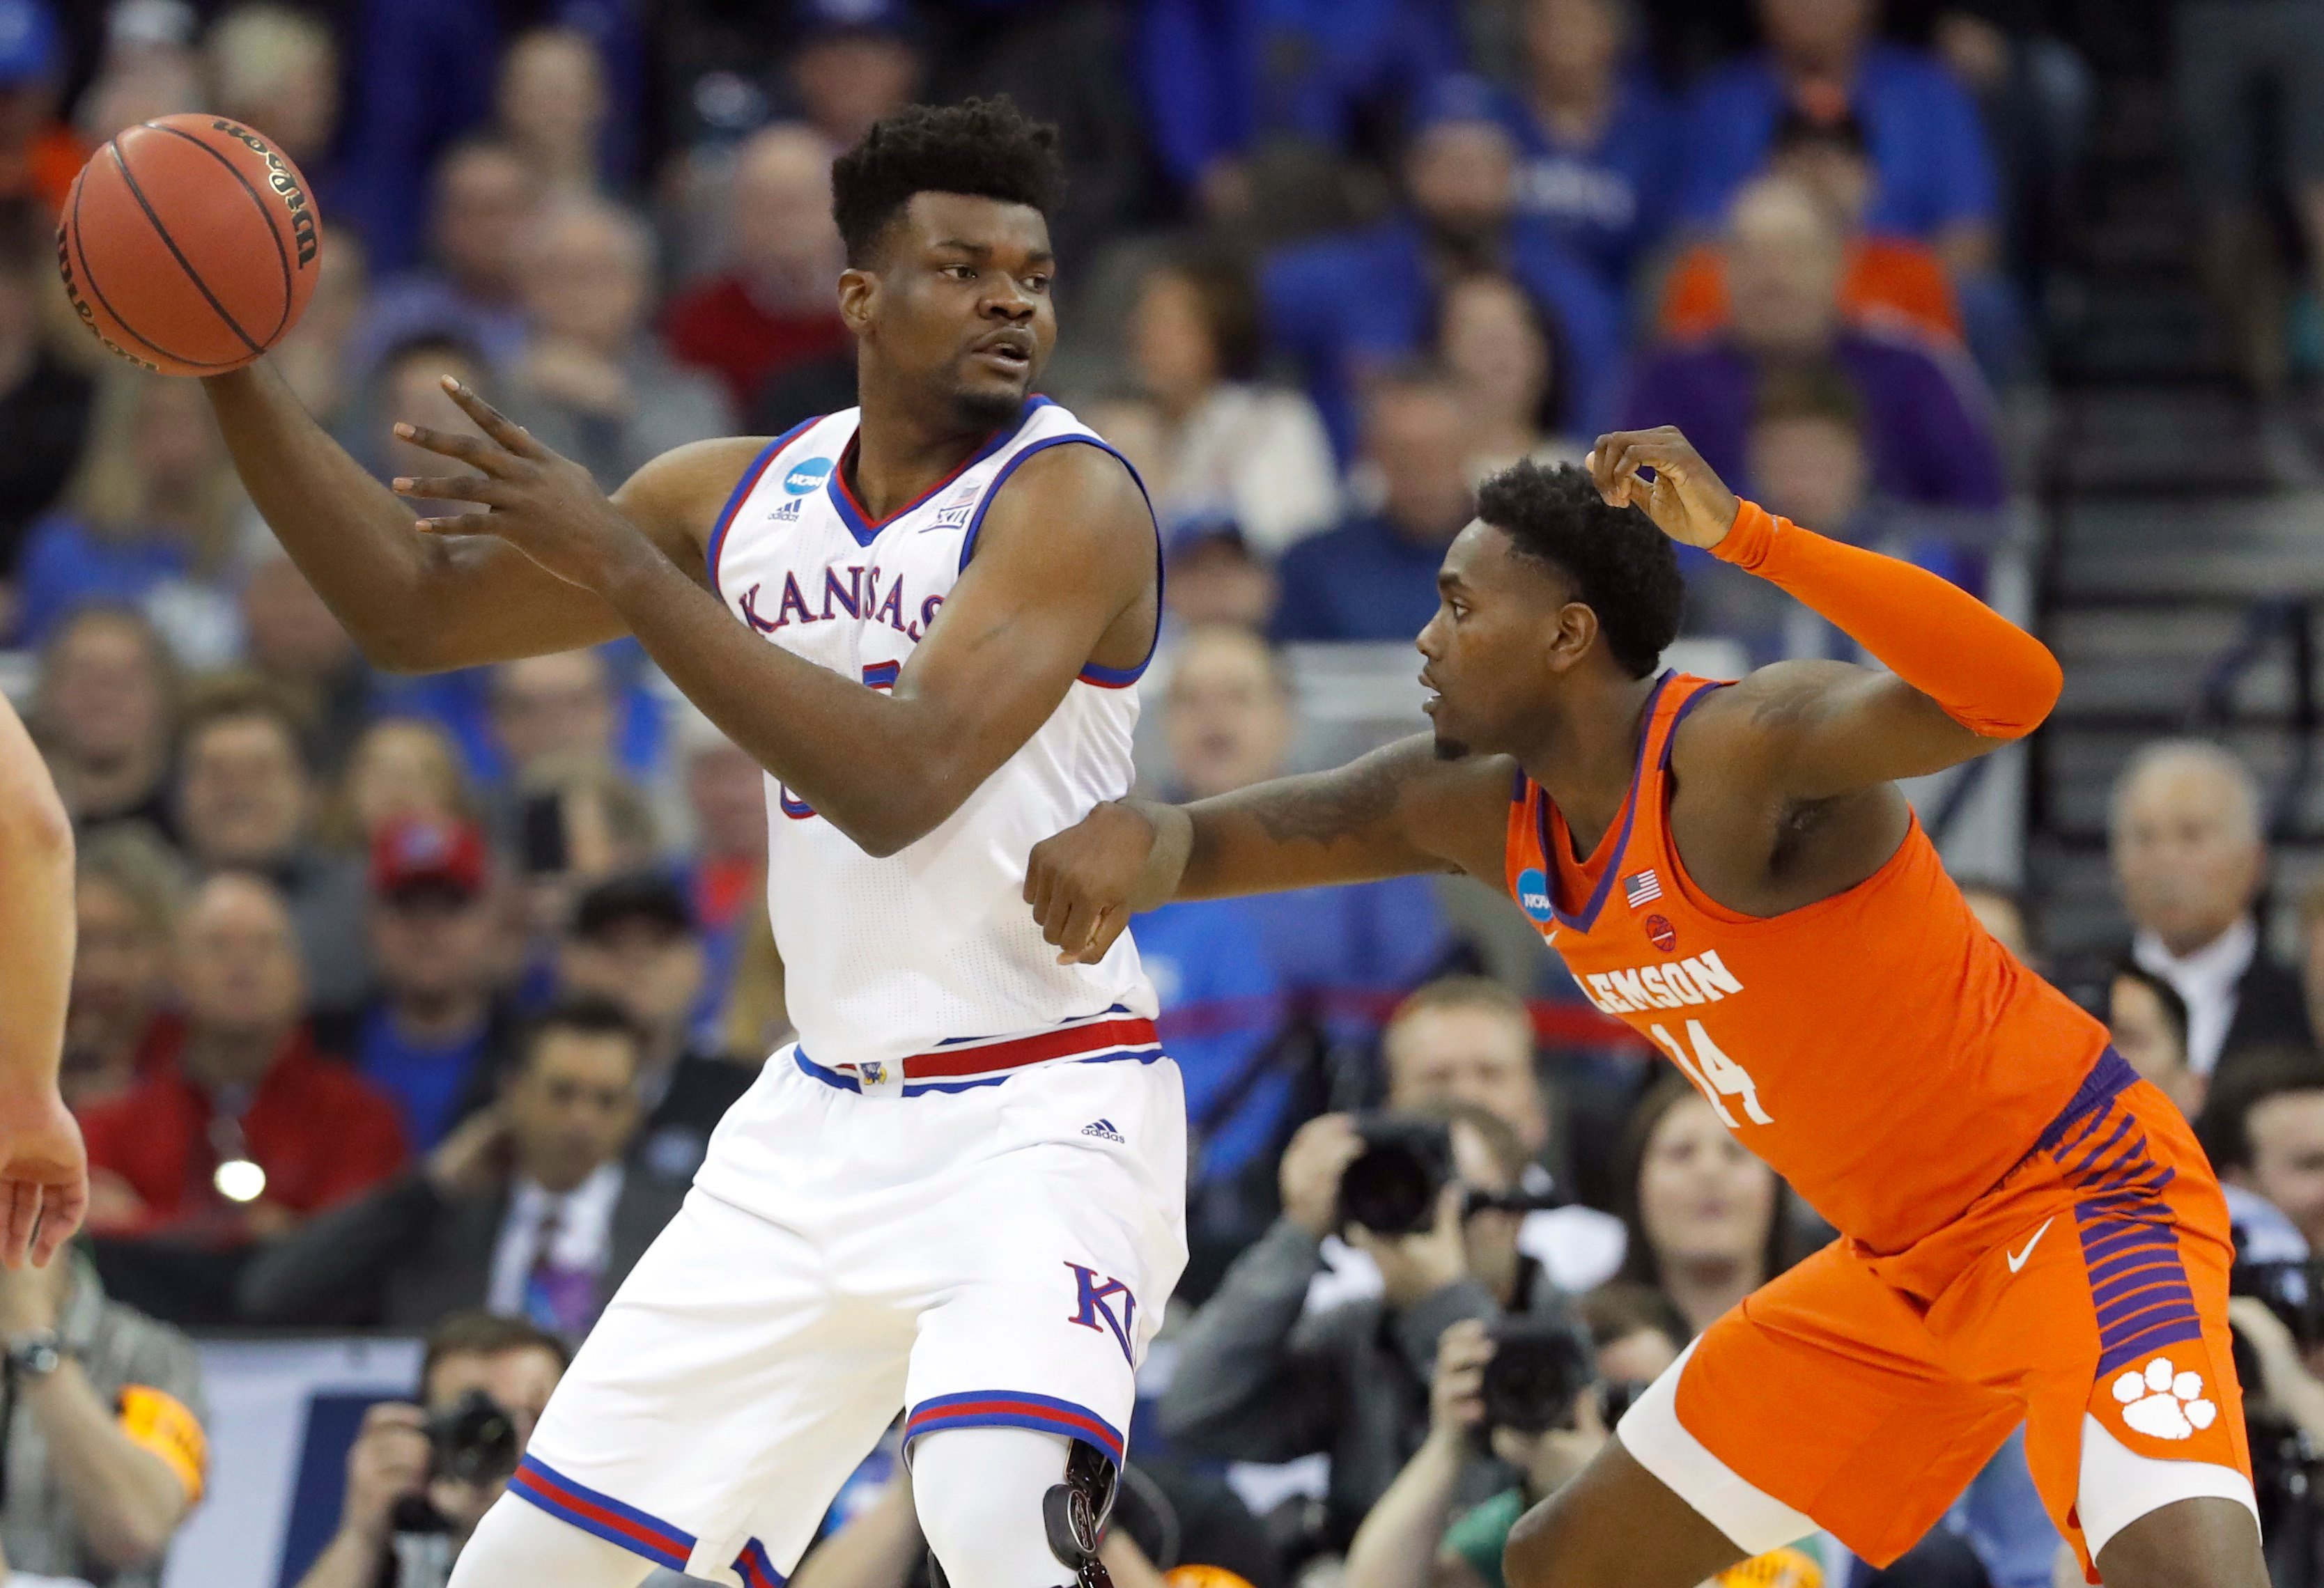 Kansas' Udoka Azubuike, left, looks to pass around Clemson's Elijah Thomas during the first half of a regional semifinal game in the NCAA men's college basketball tournament Friday, March 23, 2018, in Omaha, Neb. (AP Photo/Charlie Neibergall)